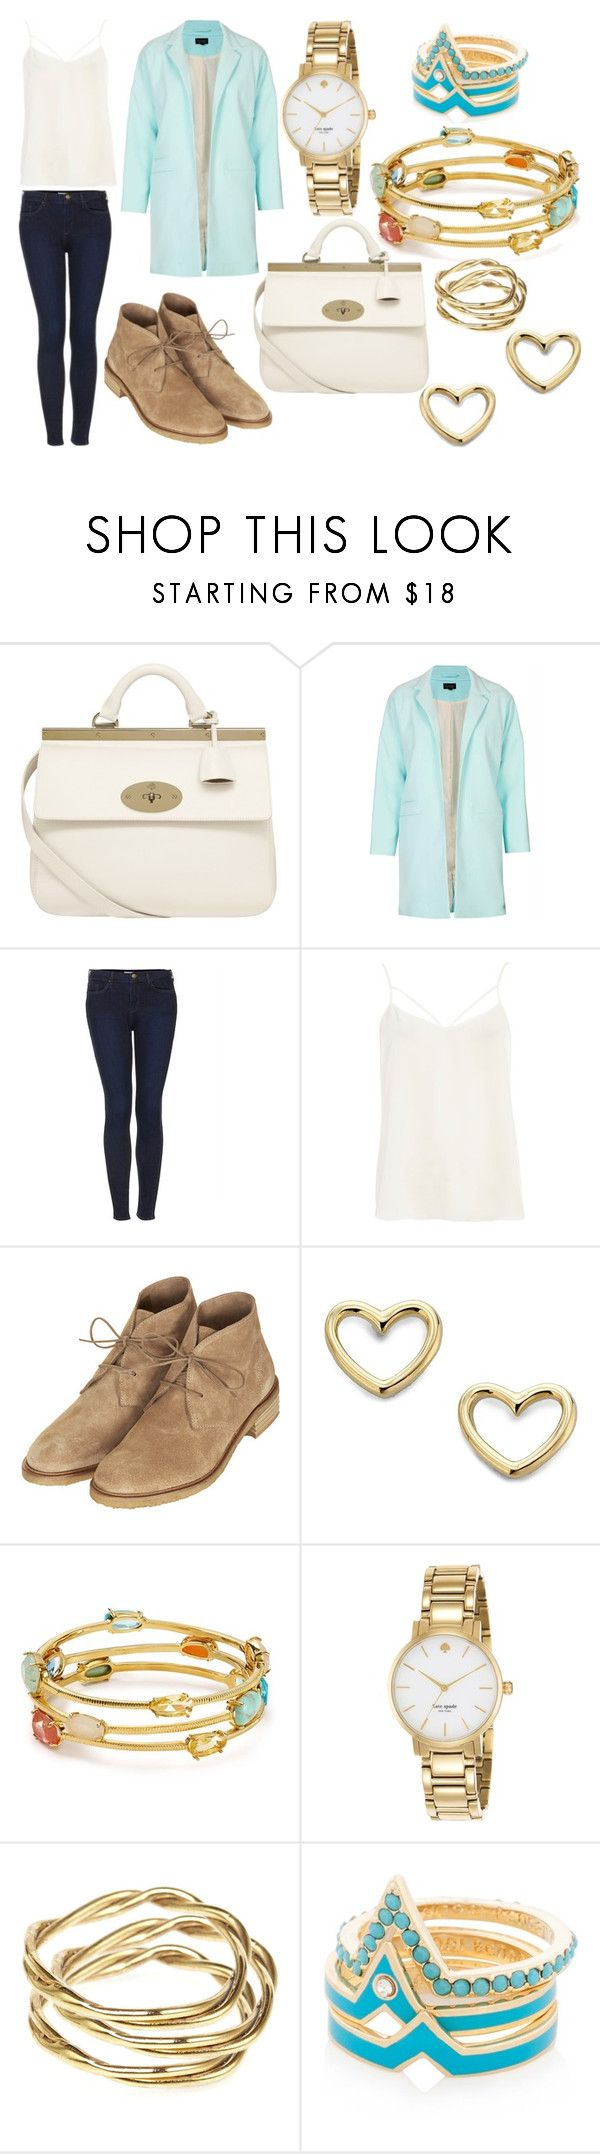 """Lunch"" by laura2703 ❤ liked on Polyvore featuring Mulberry, Topshop, River Island, Marc by Marc Jacobs, Lauren Ralph Lauren, Kate Spade, Alicia Marilyn Designs and Henri Bendel"